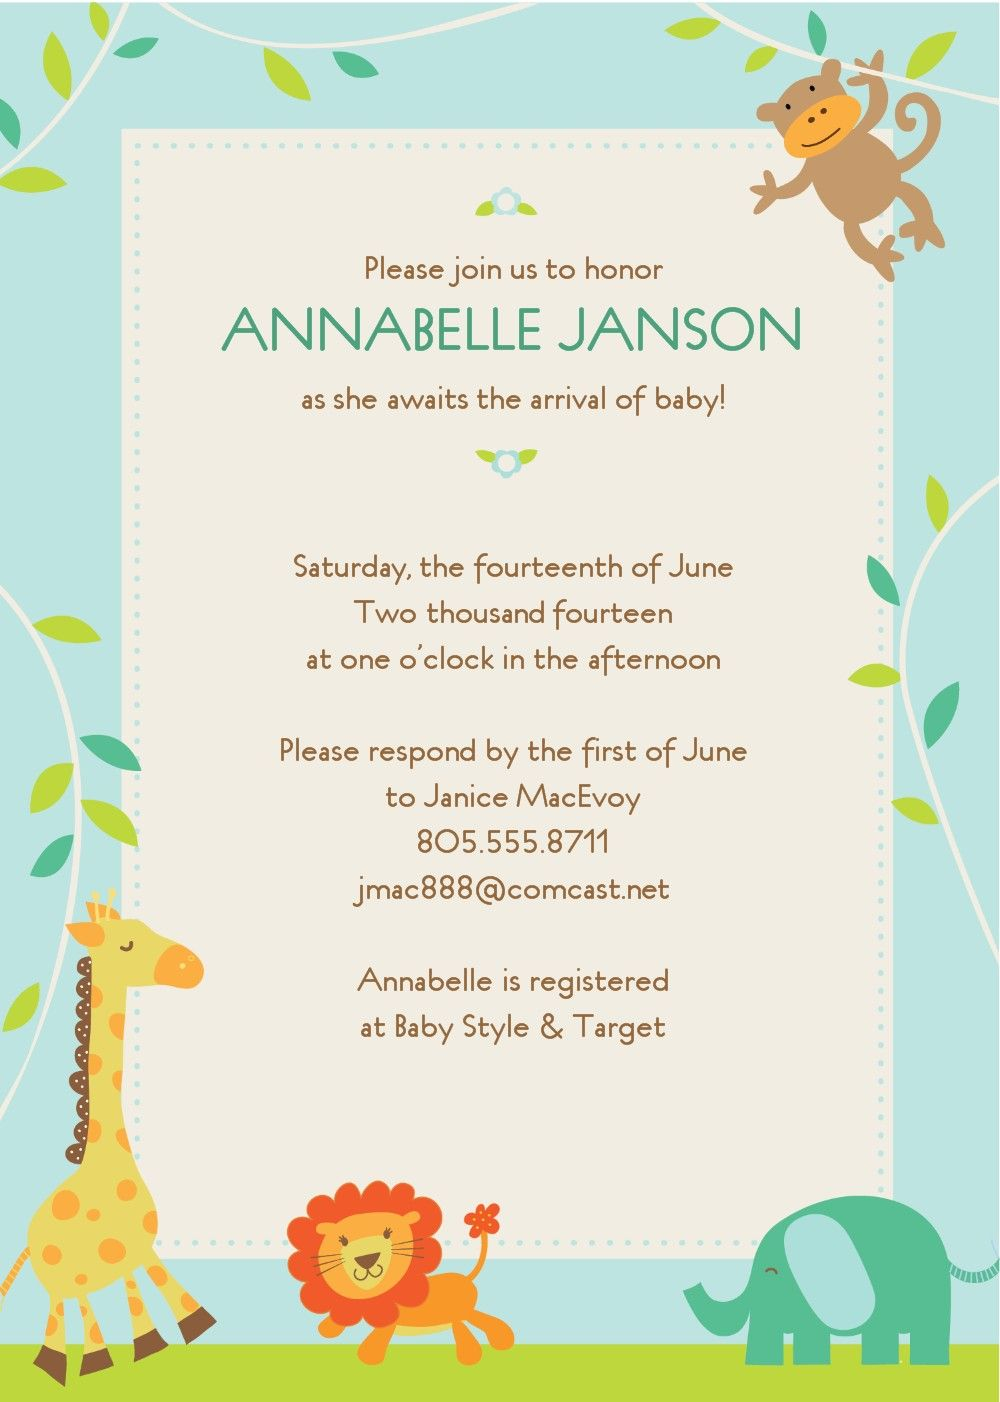 baby shower boy invitation templates try it login baby shower boy invitation templates try it login learn more contact us